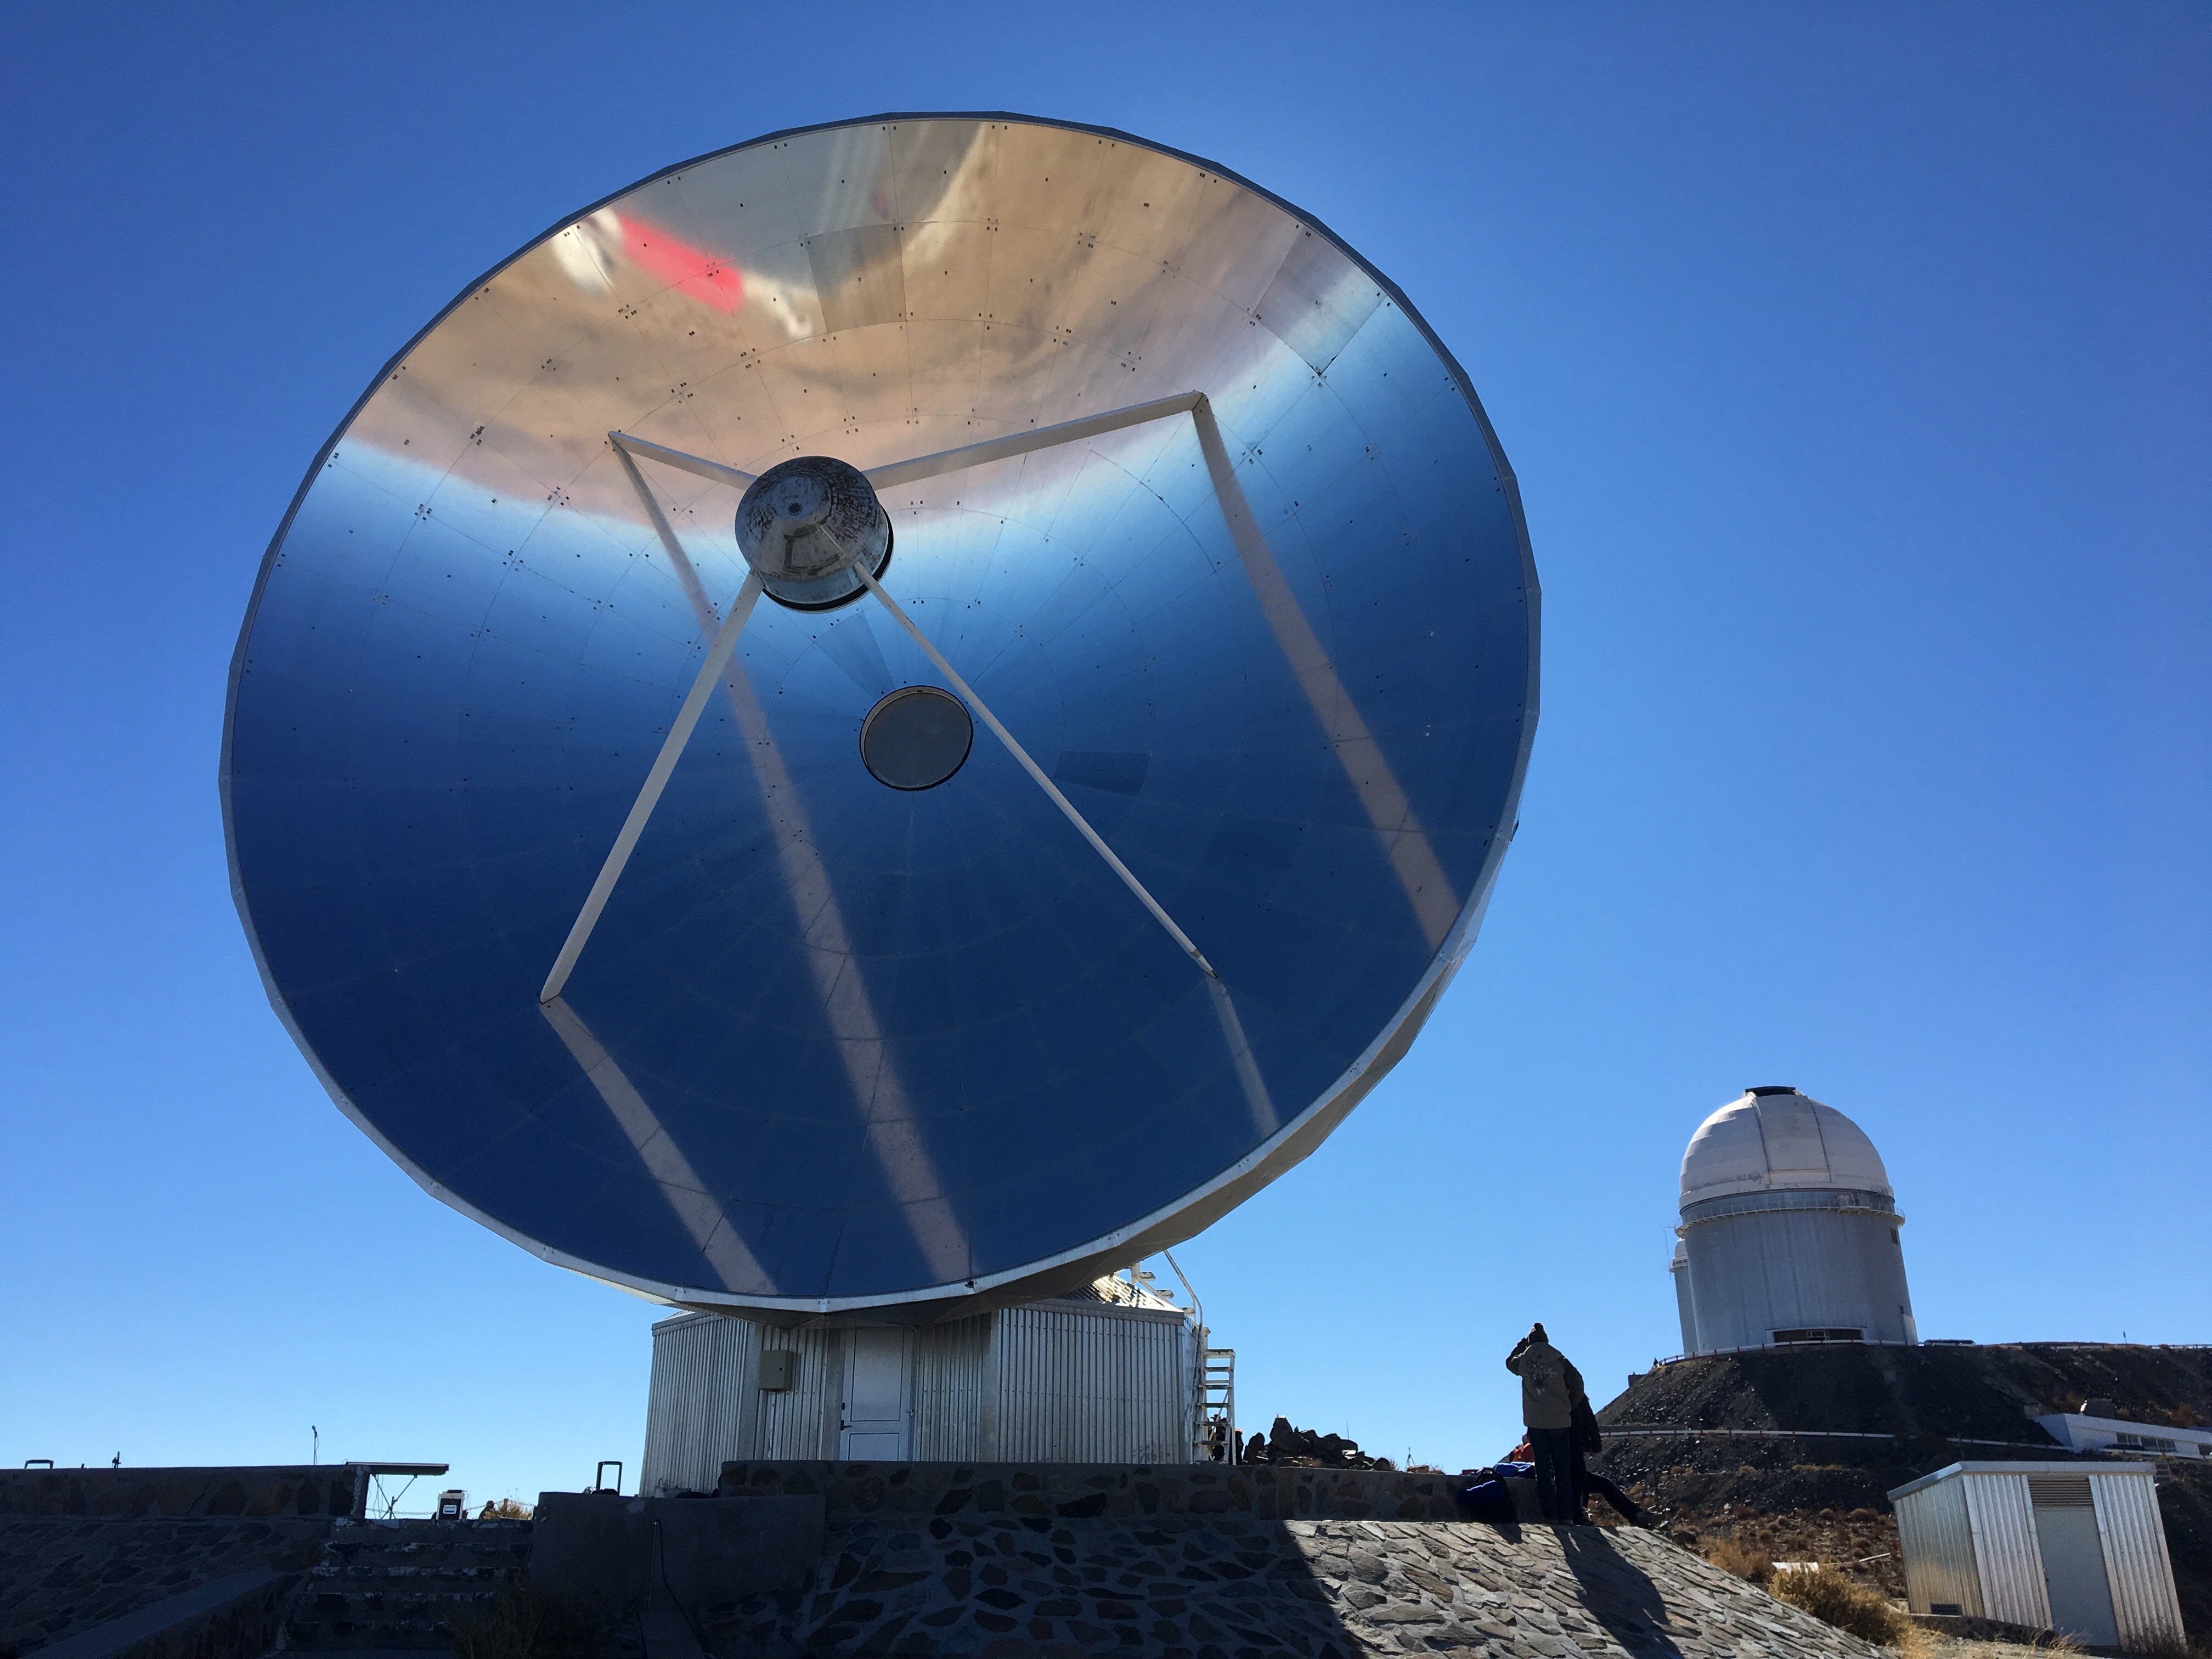 A mirrored dish and telescope dome at La Silla observatory, Chile.